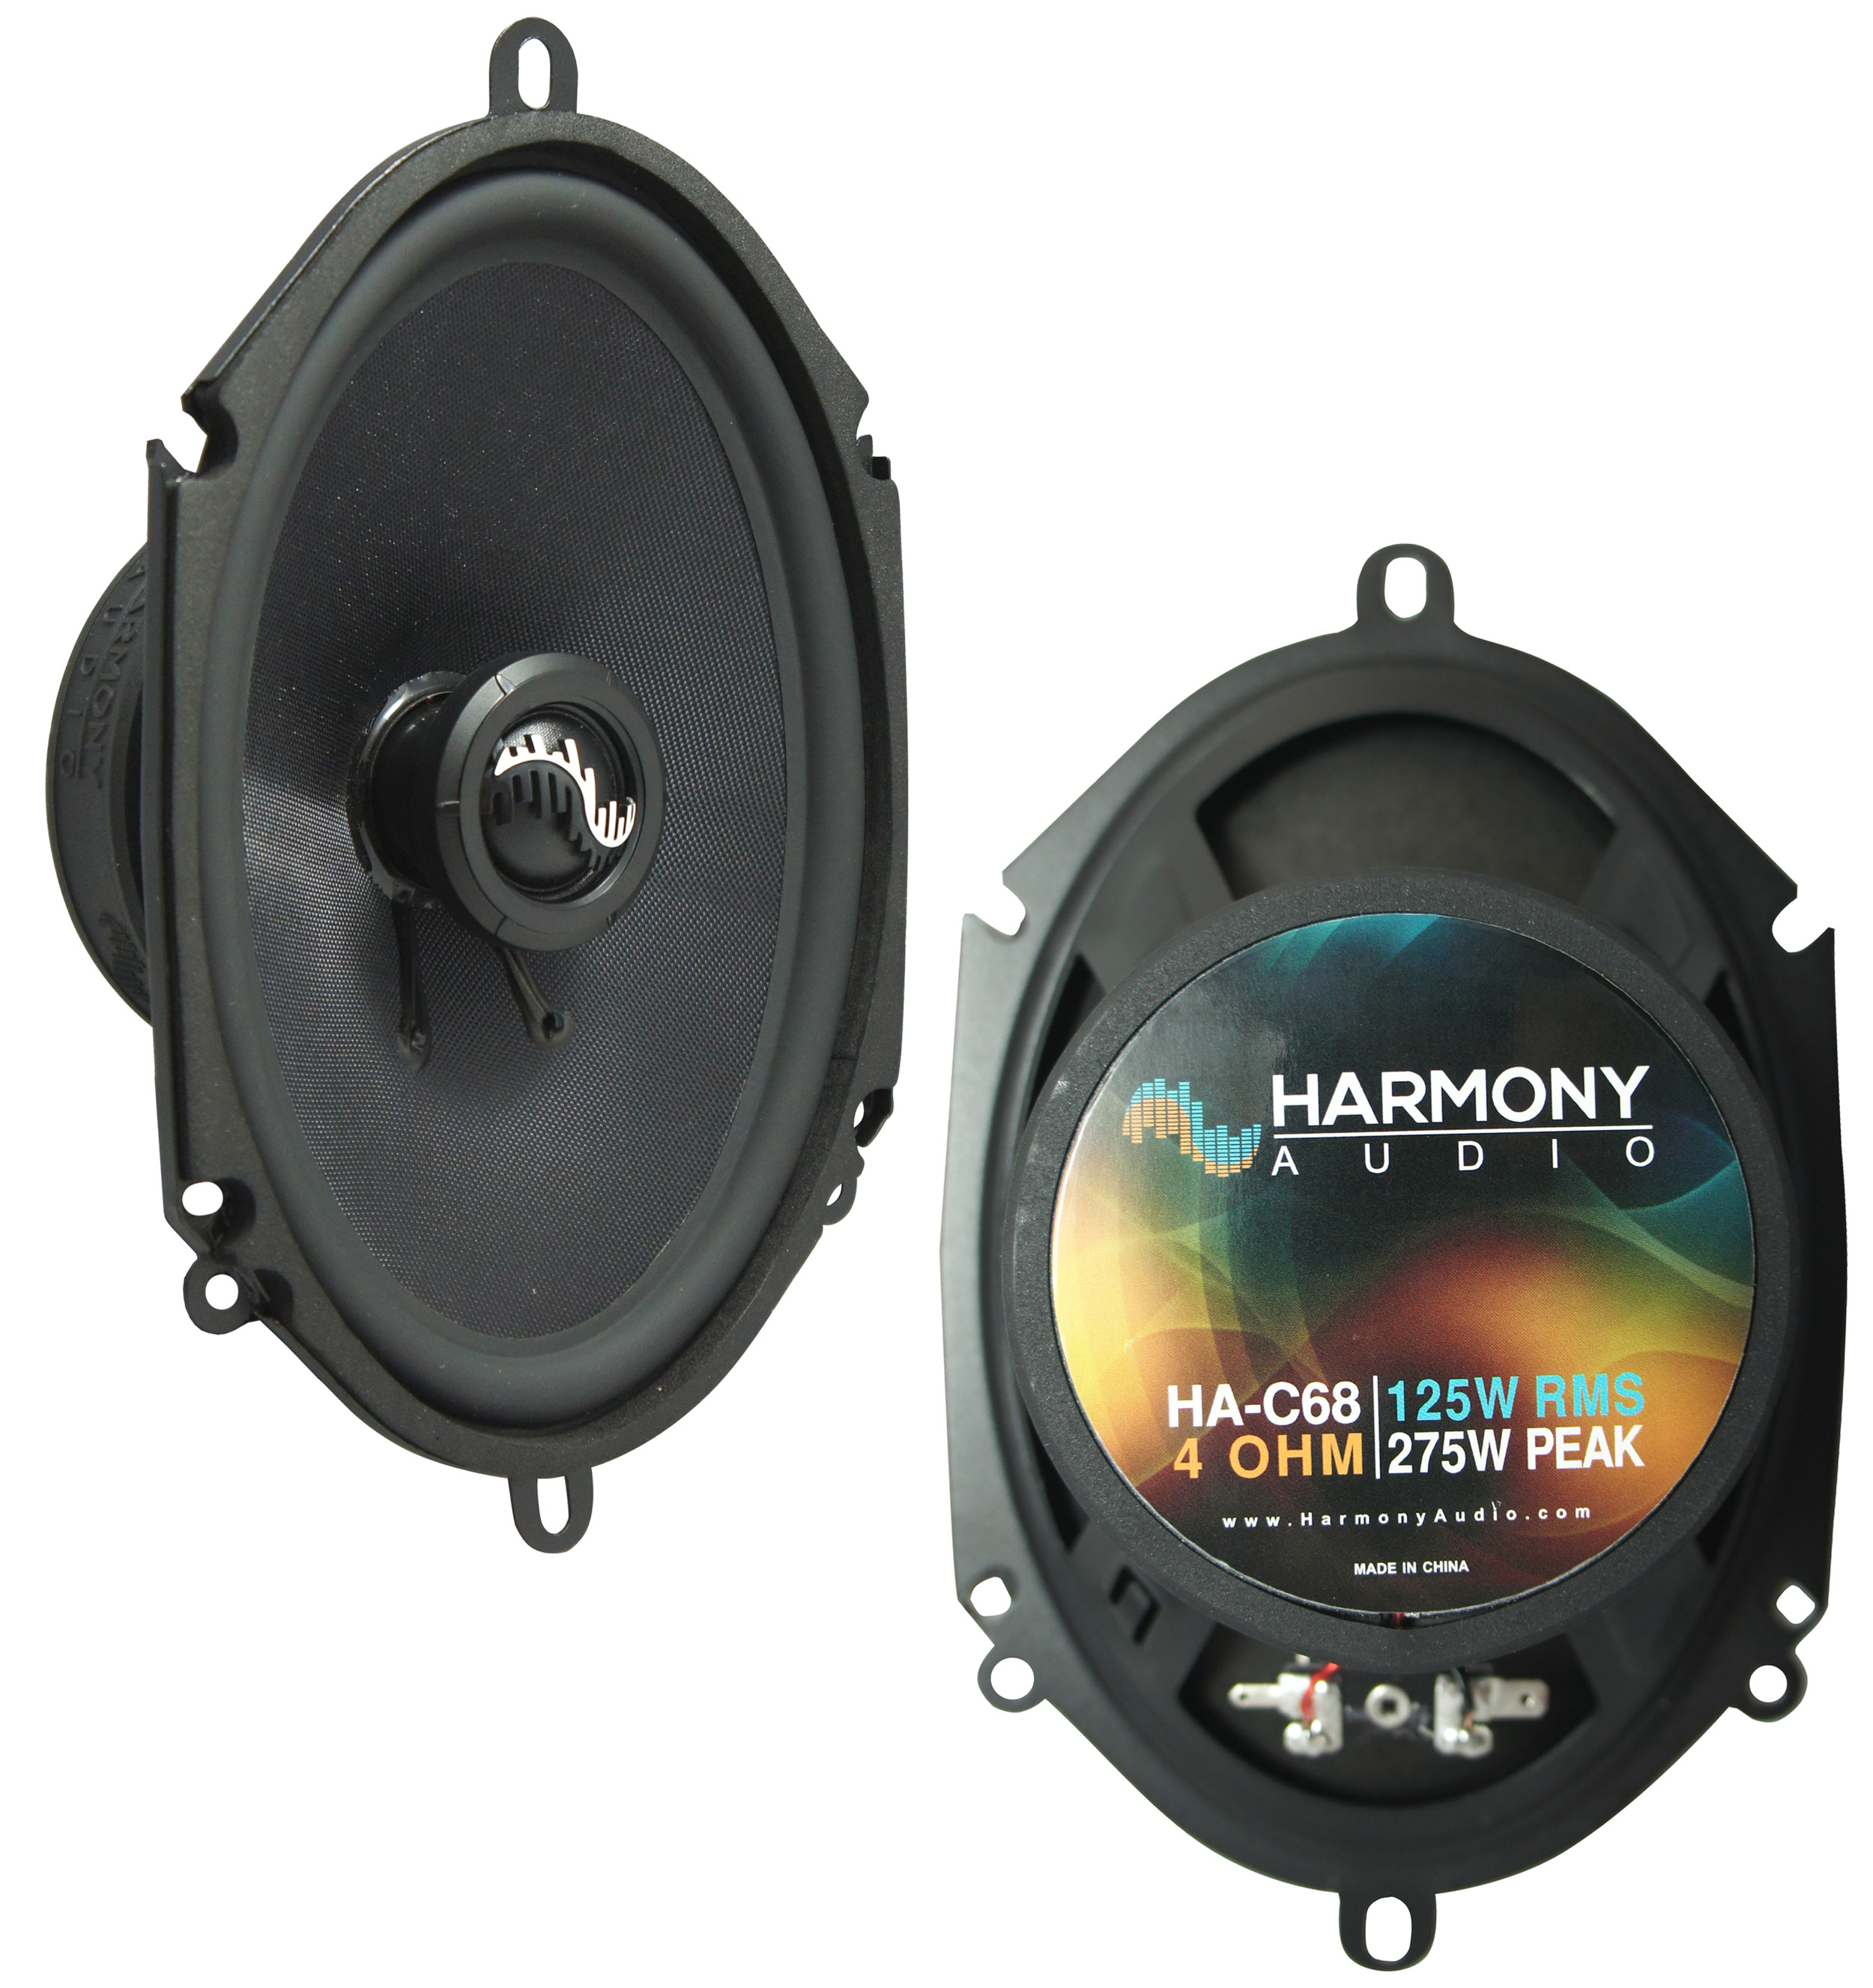 Fits Ford Taurus 2008-2009 Rear Deck Replacement Harmony HA-C68 Premium Speakers New